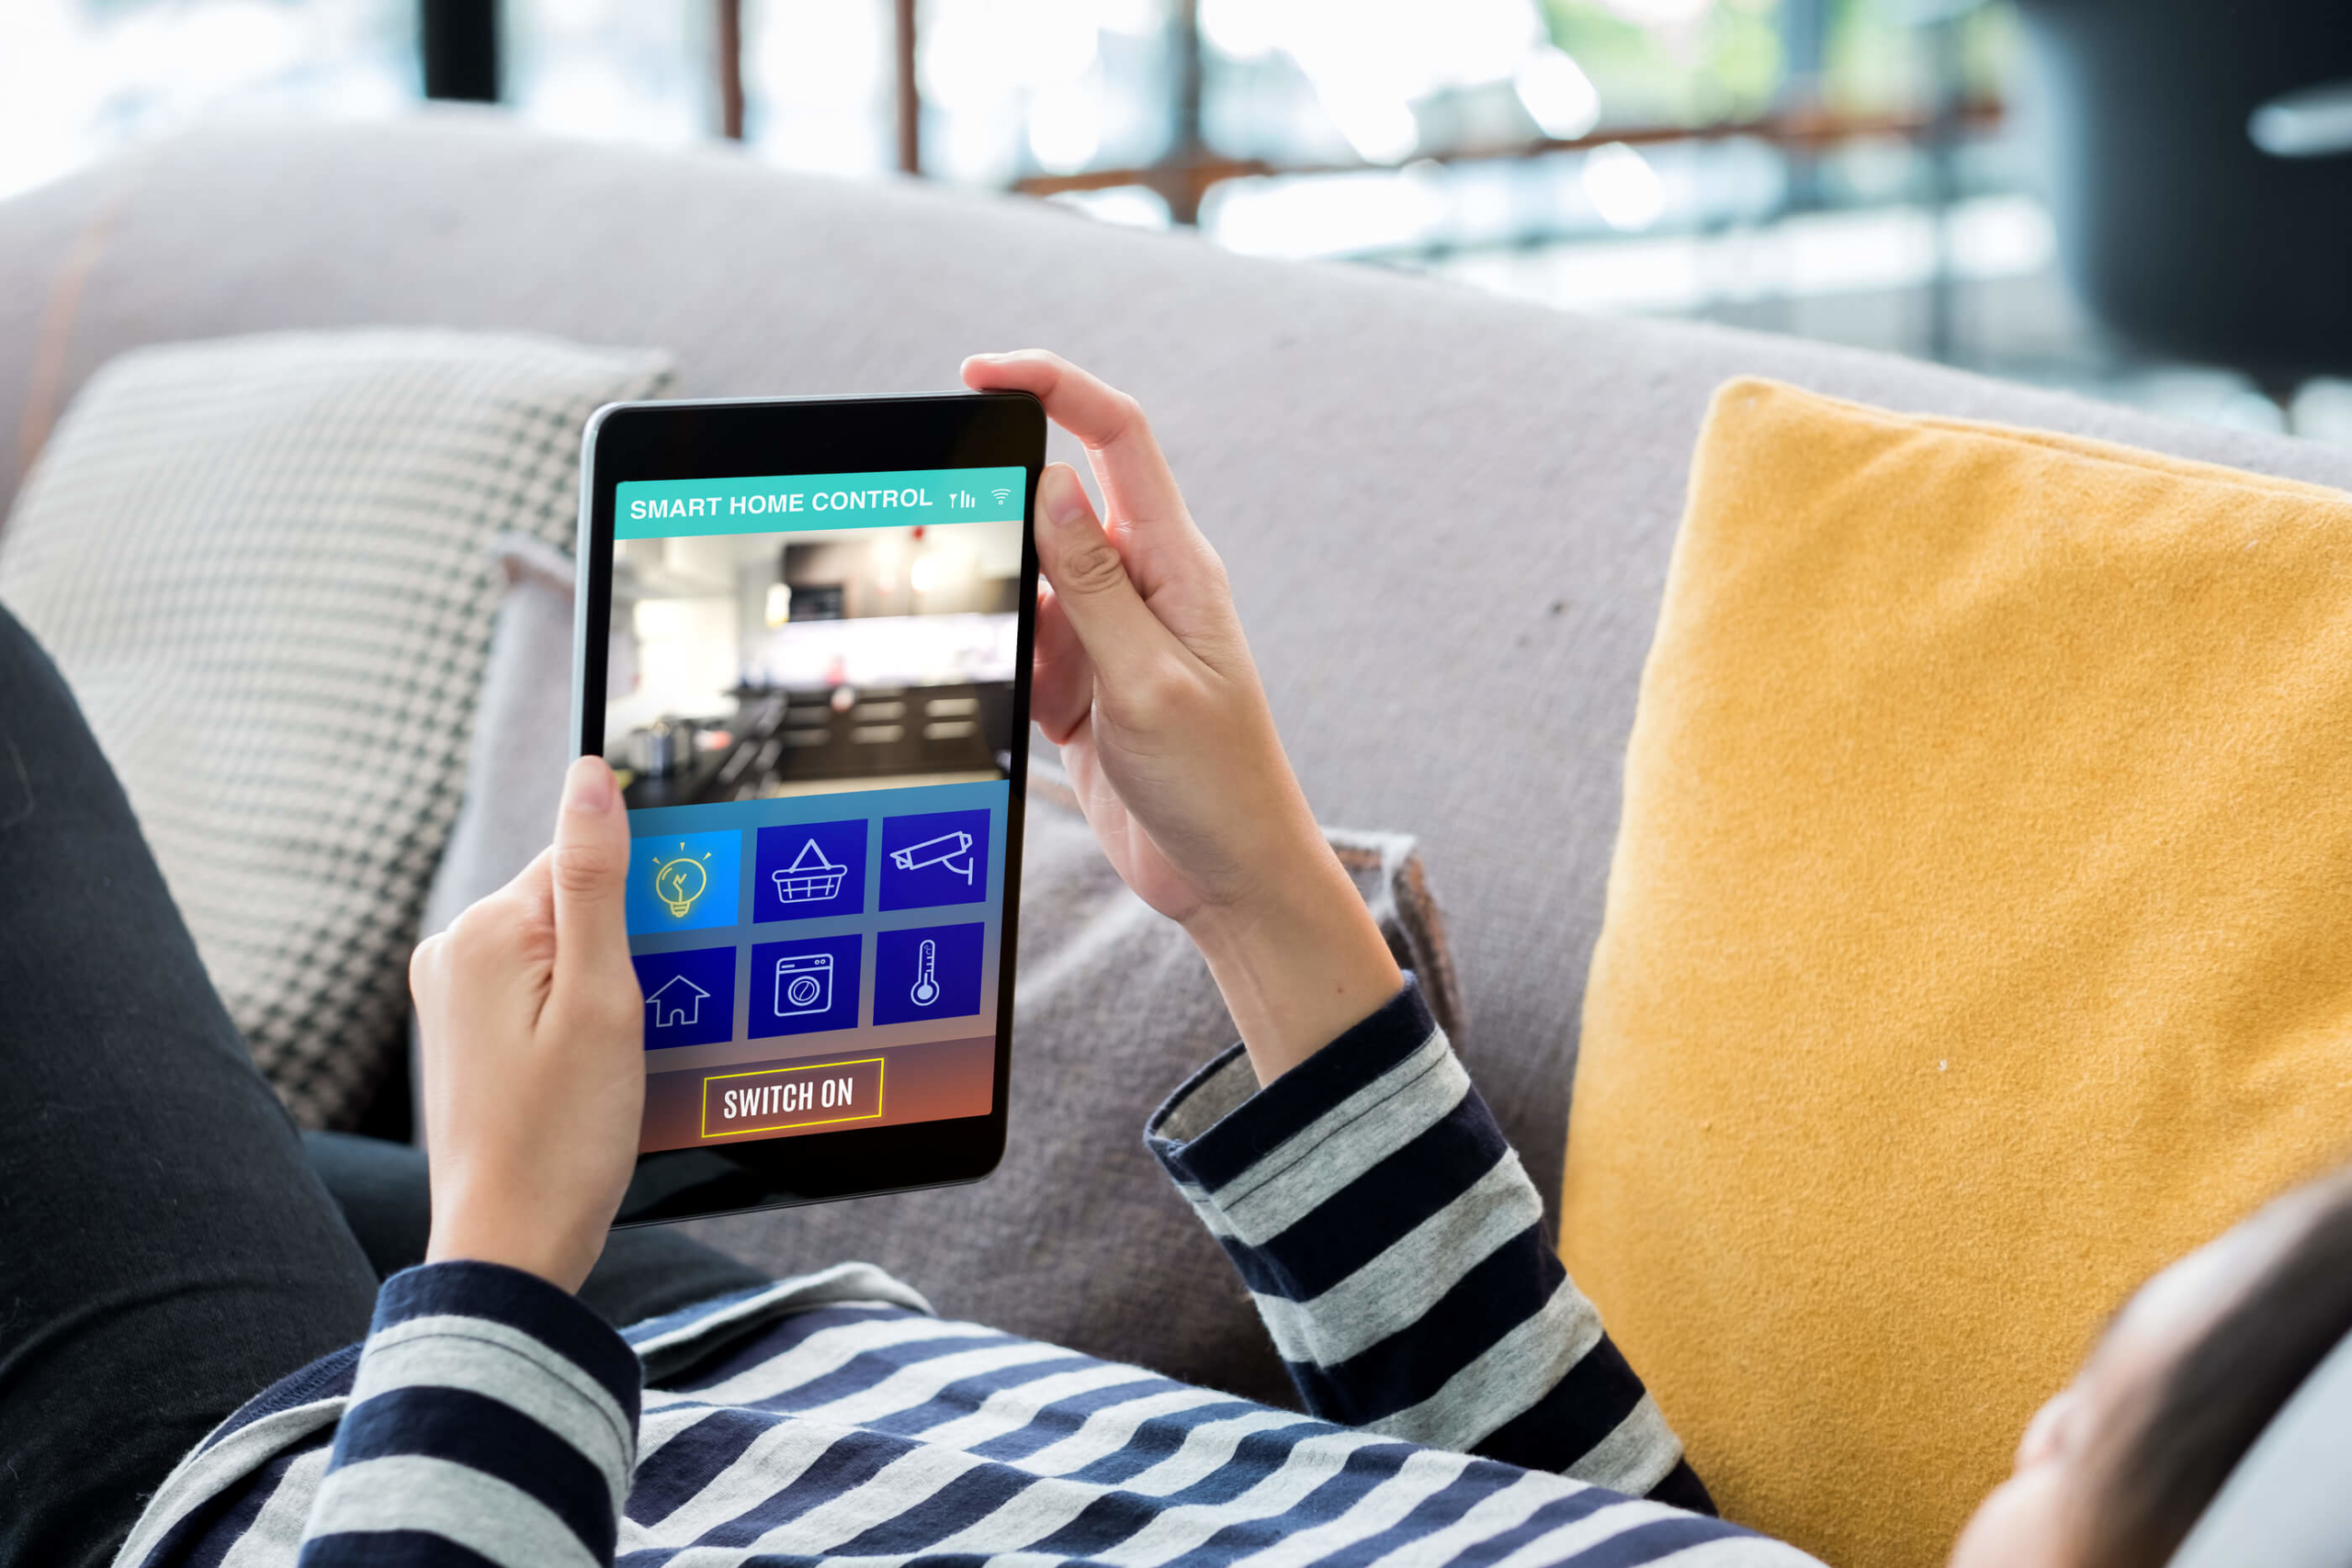 home-automation-woman-on-couch-control-device